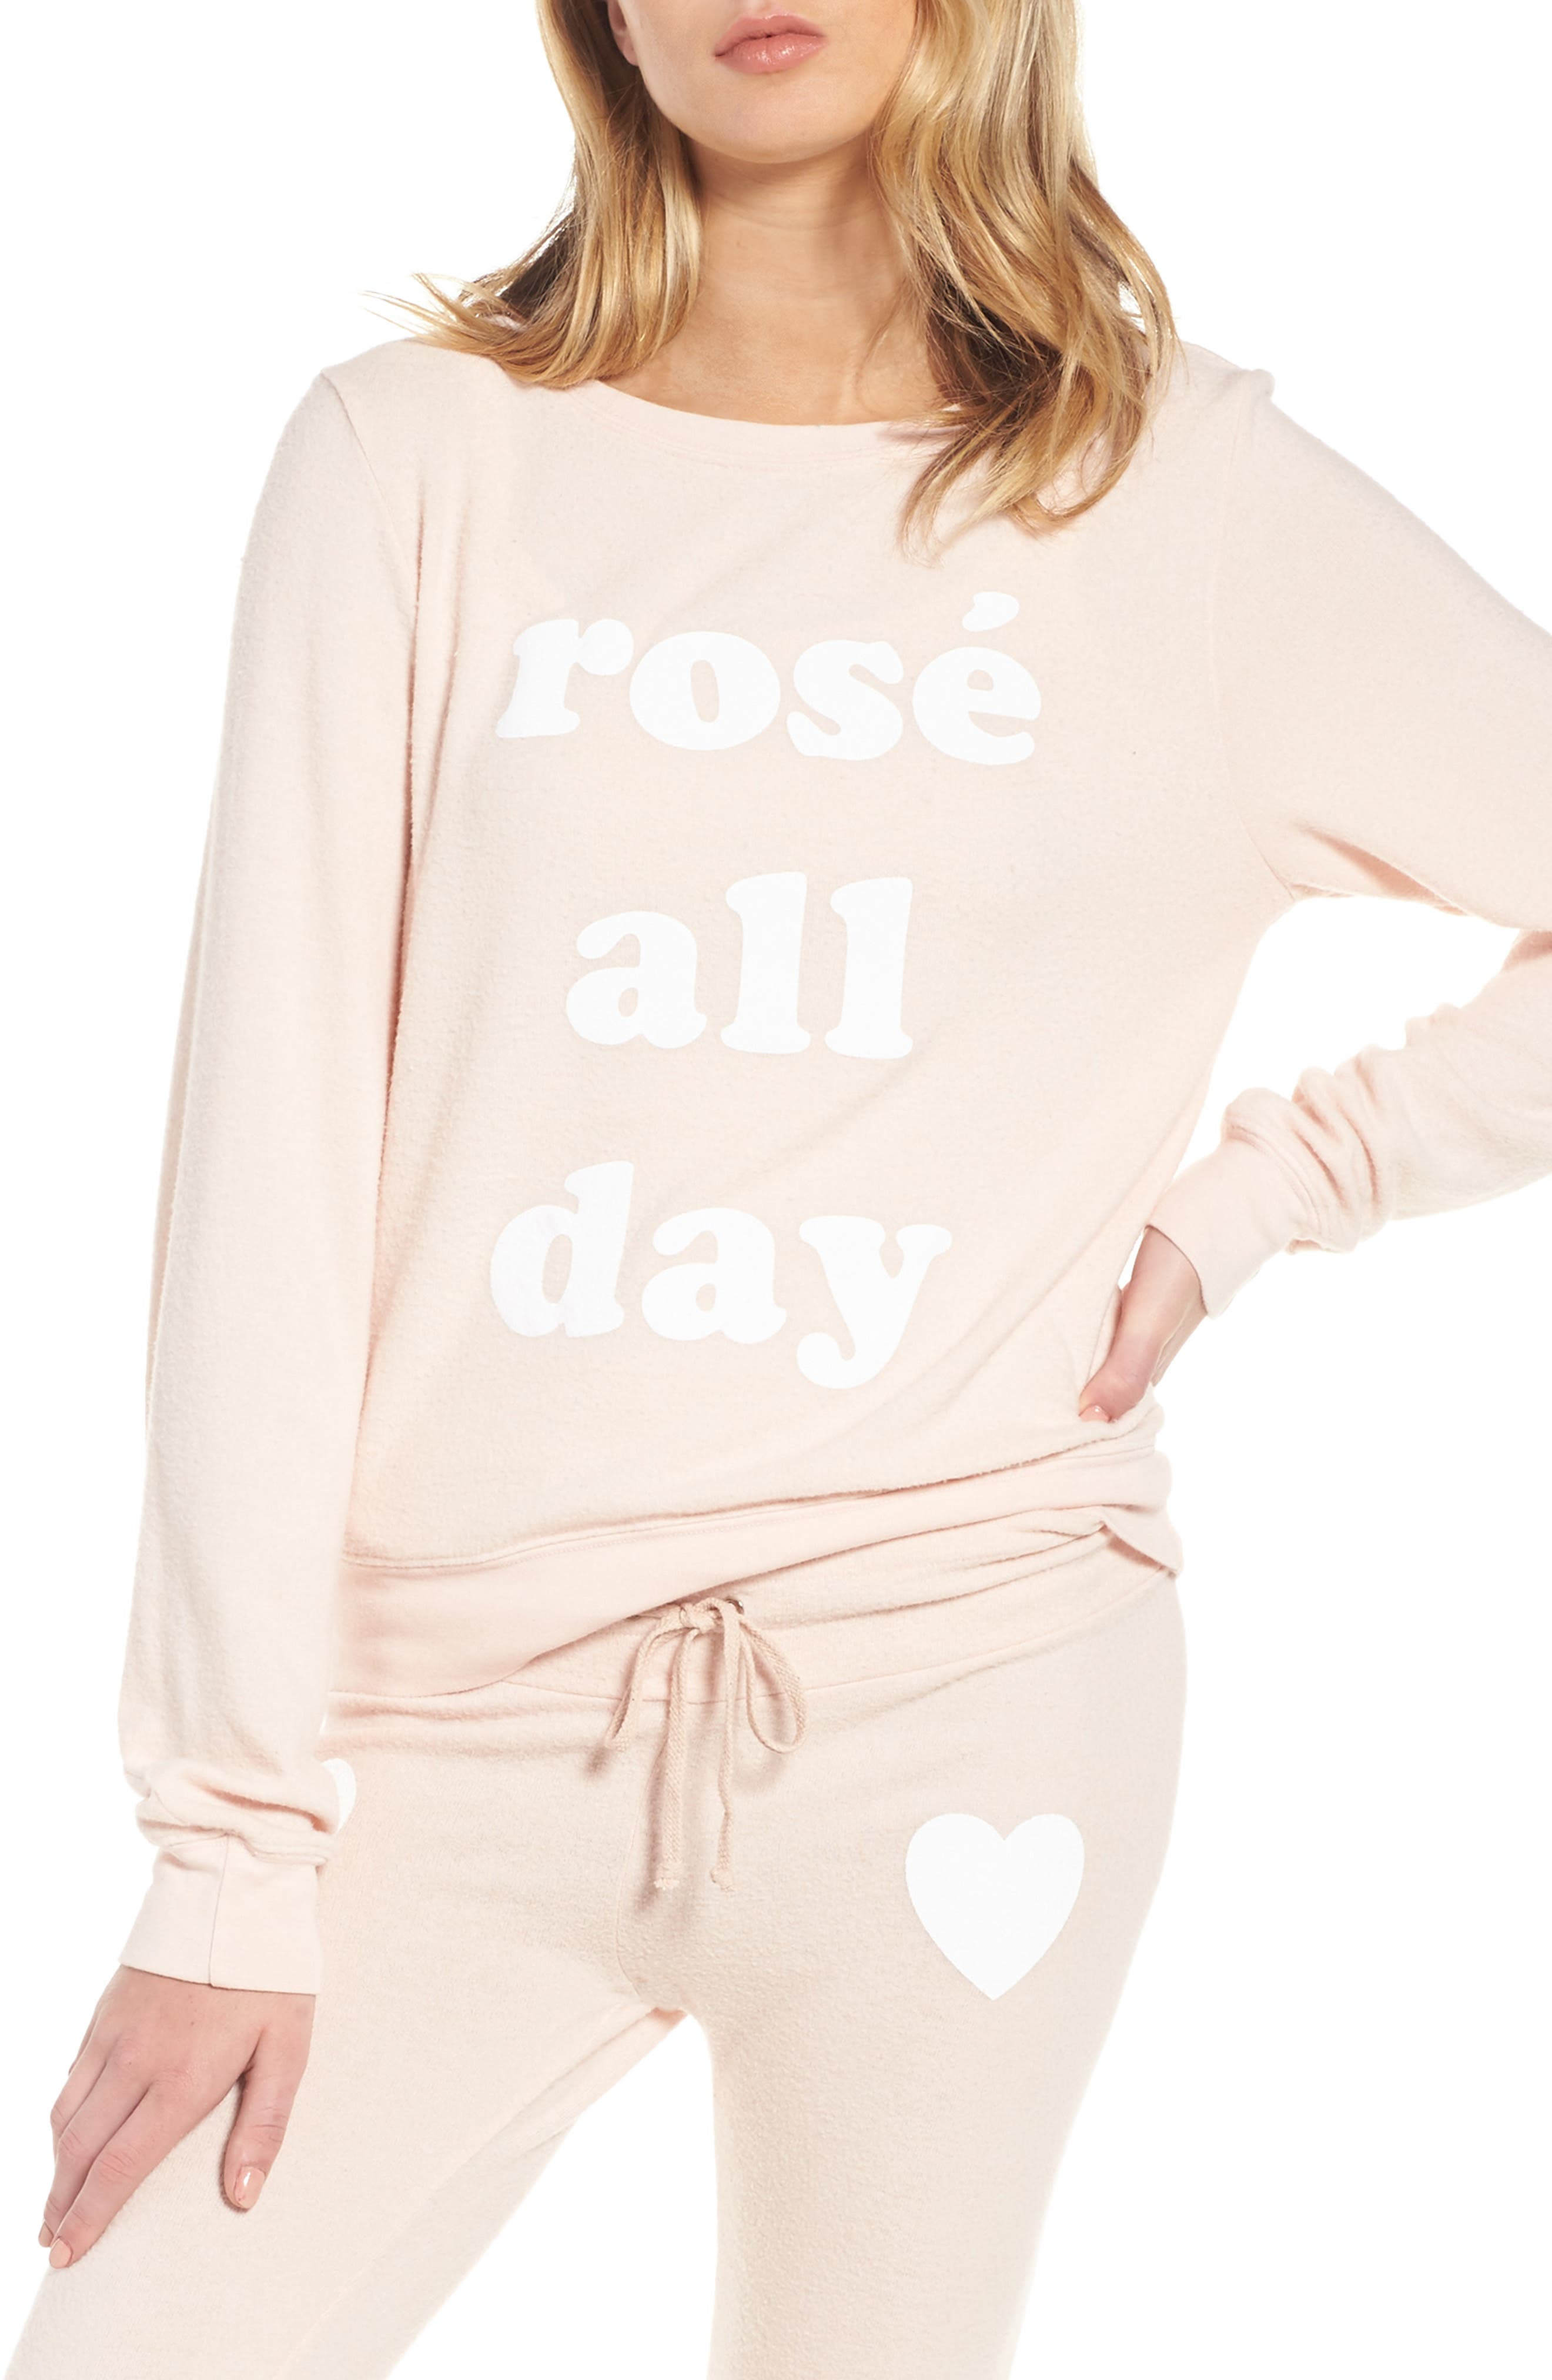 Rosé All Day Sweatshirt,                             Main thumbnail 1, color,                             Rose